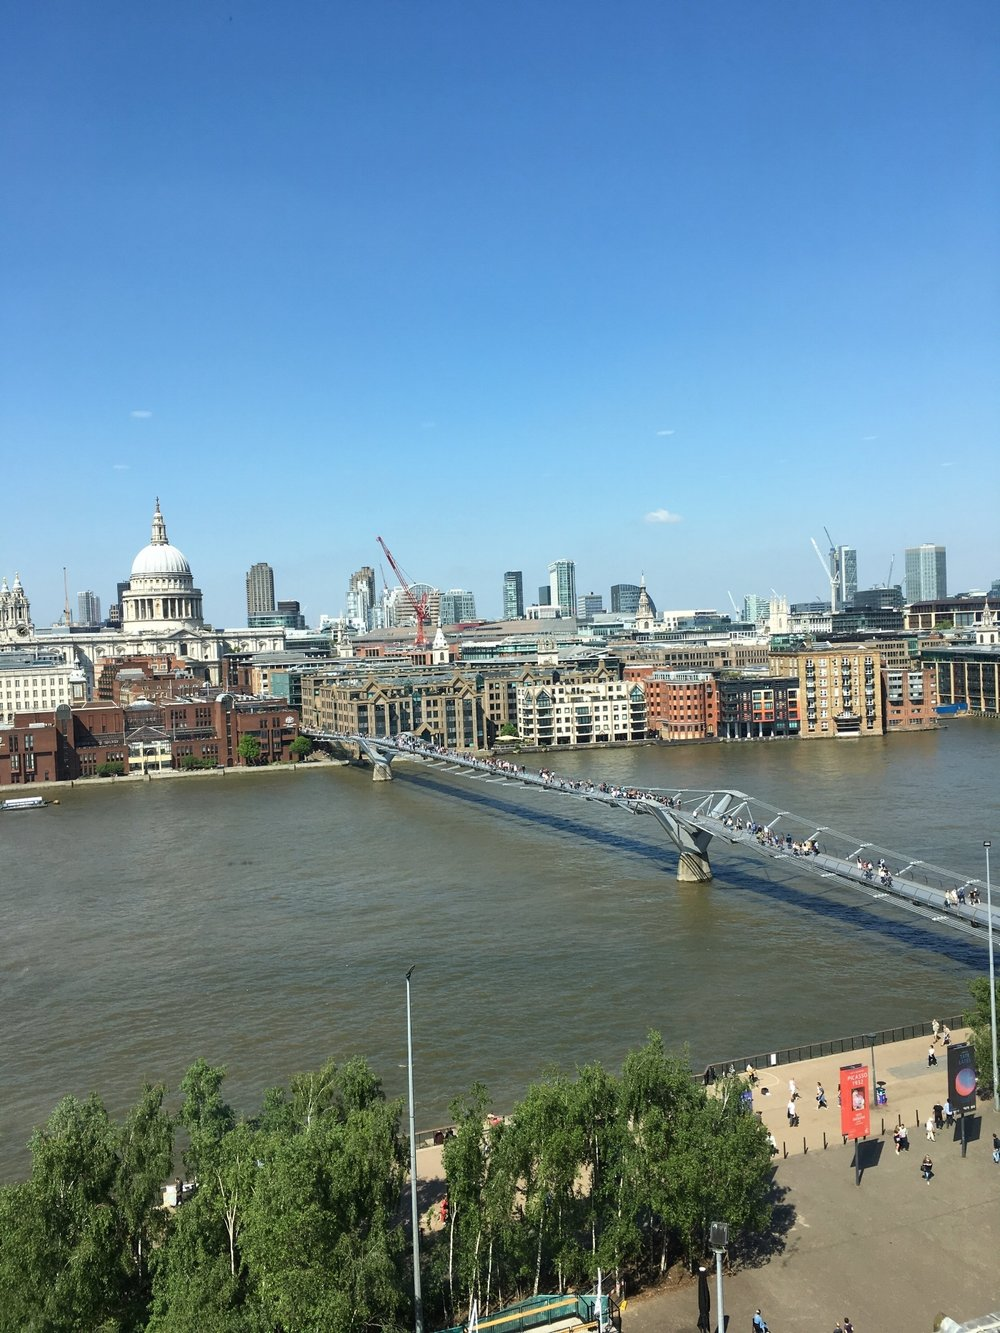 The River Thames. Sir Christopher Wren. Bridge Wobbly. Aloft.